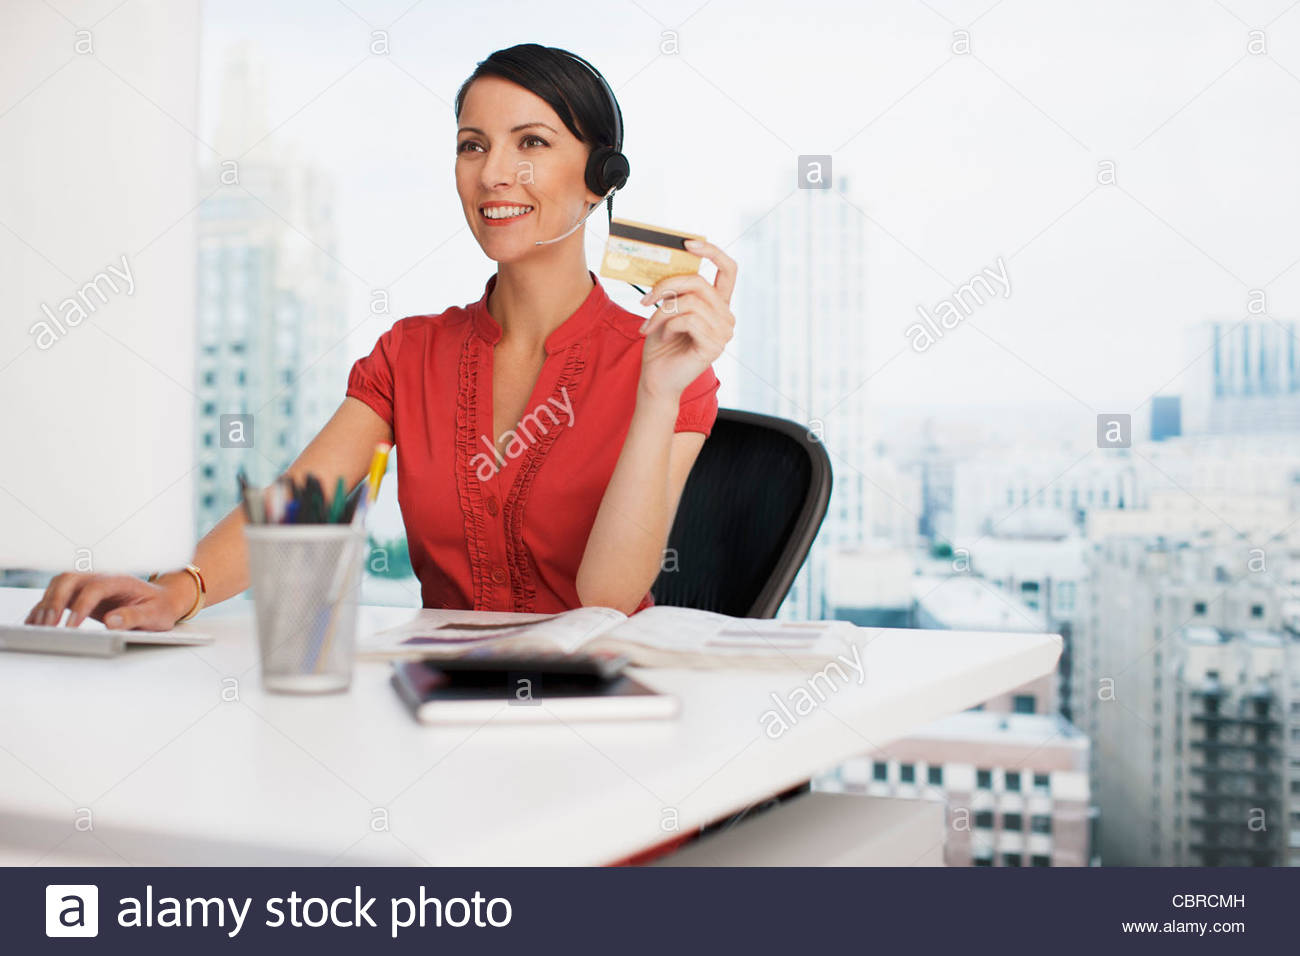 Businesswoman holding credit card at office desk - Stock Image